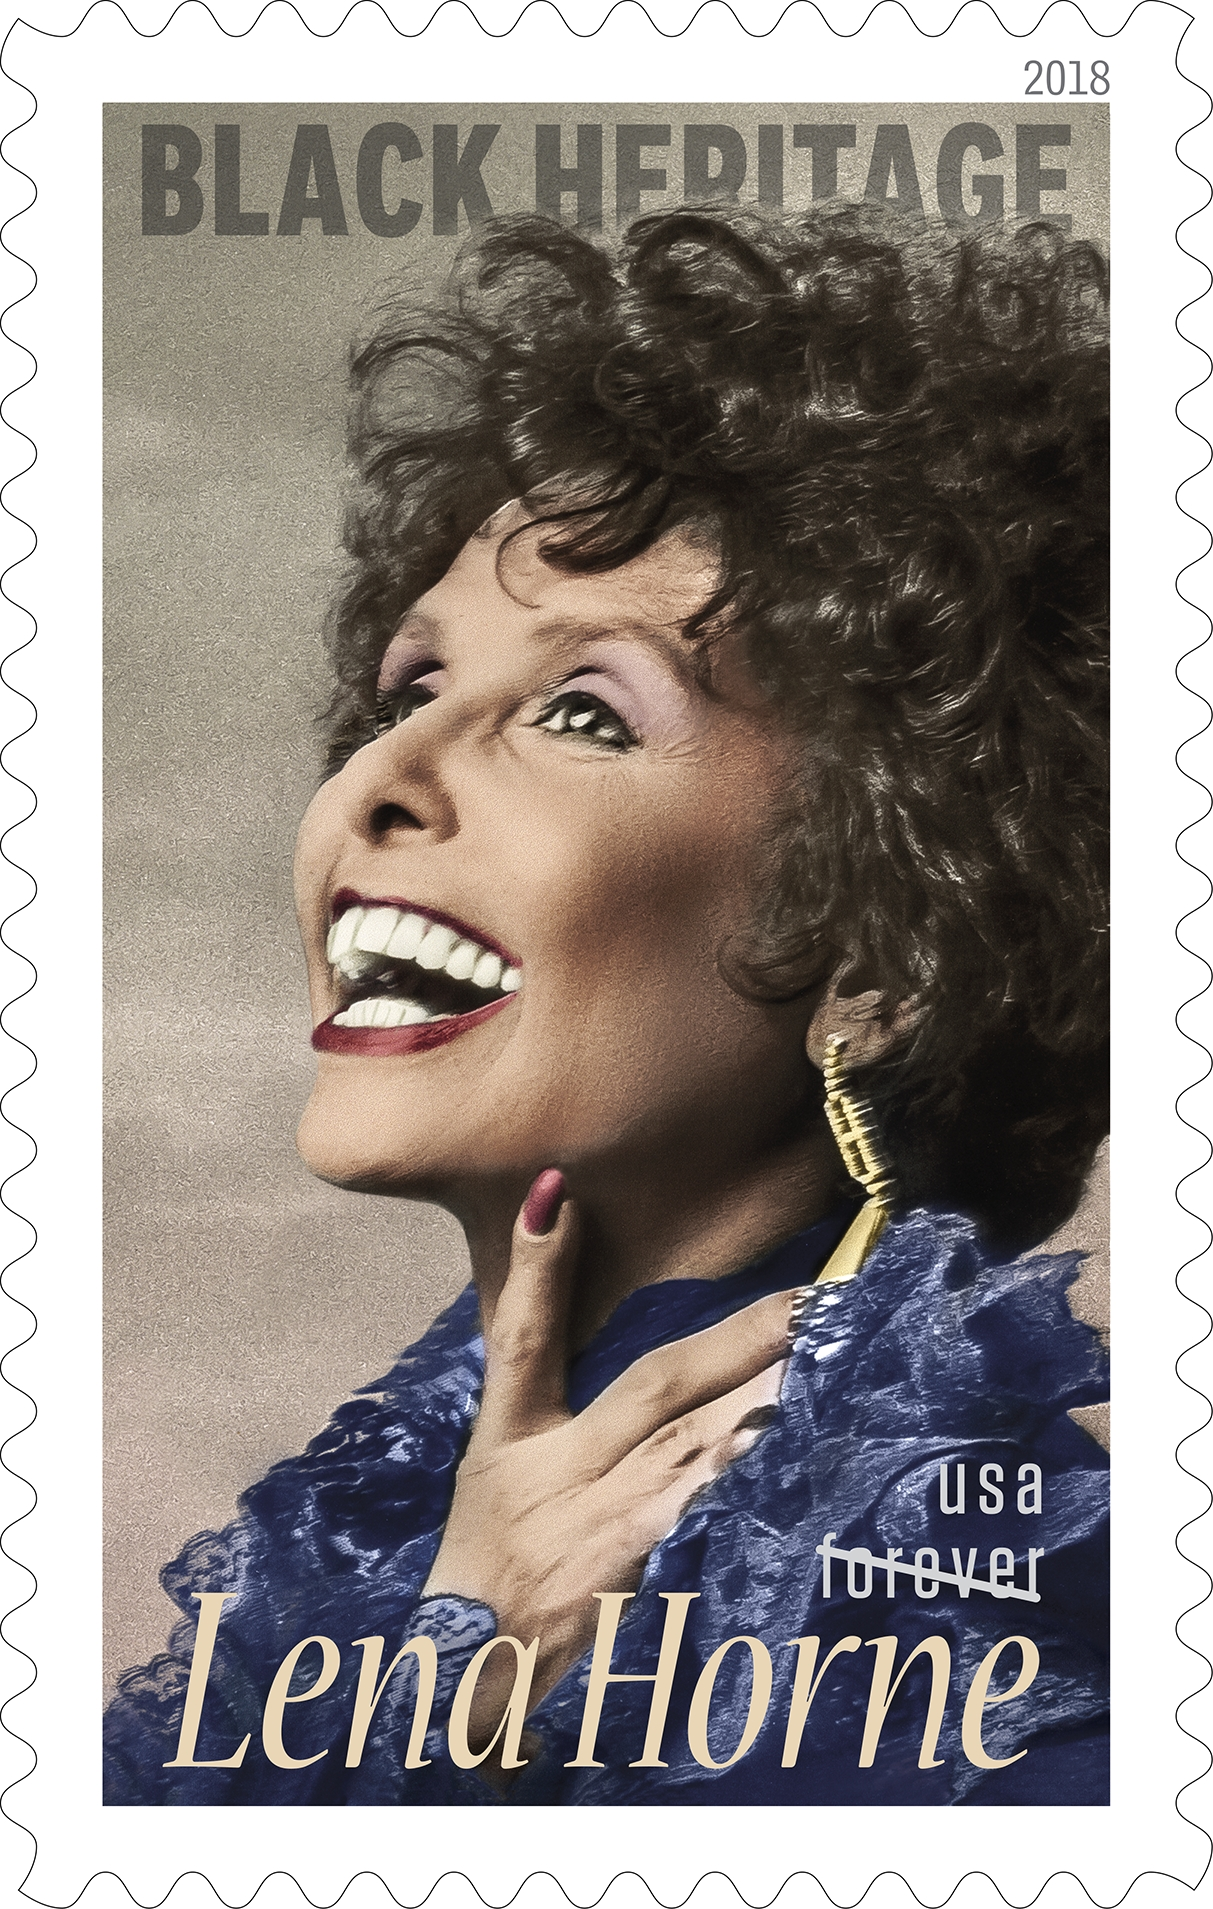 Lena Horne (Black Heritage series): The 41st issuance in the Black Heritage series honors the achievements of legendary performer and civil rights activist Lena Horne (1917–2010). Remembered as one of America's great interpreters of popular songs, Horne also was a trailblazer in Hollywood for women of color. She used her personal elegance, charisma and fame to become an important spokesperson for civil rights. (USPS)